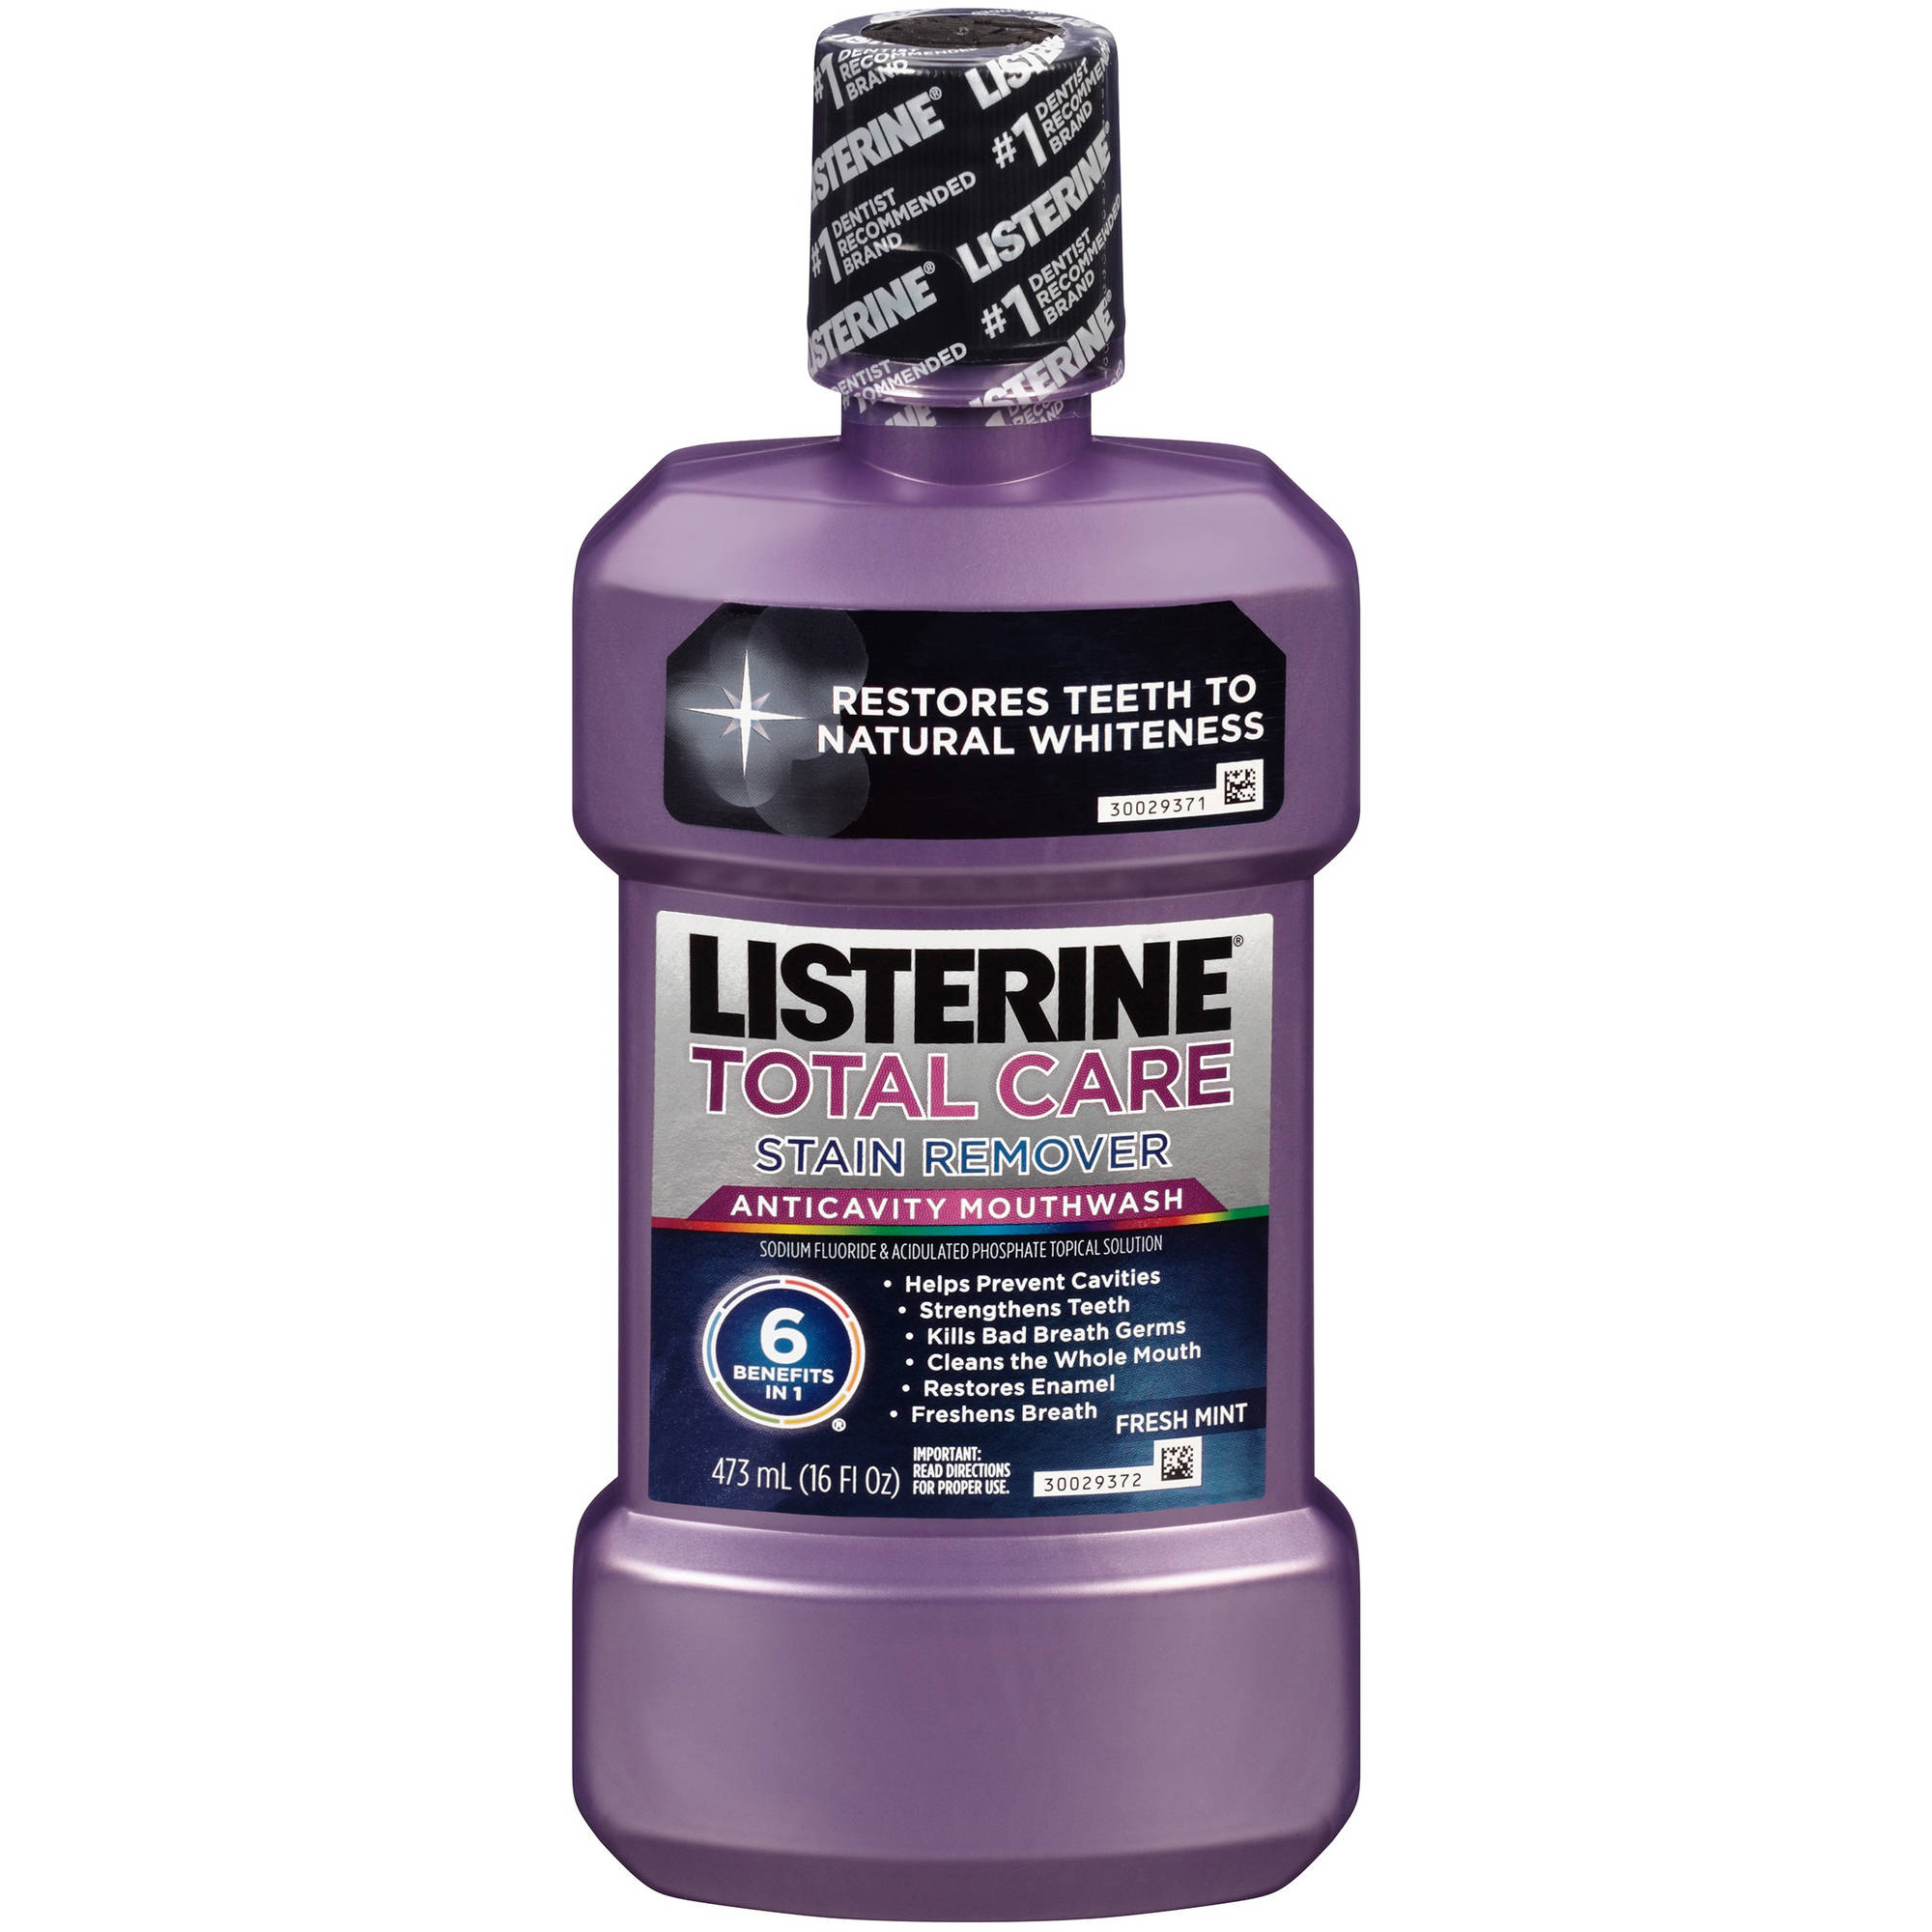 Listerine Total Care Plus Whitening Fresh Mint Anticavity Mouthwash, 16 fl oz